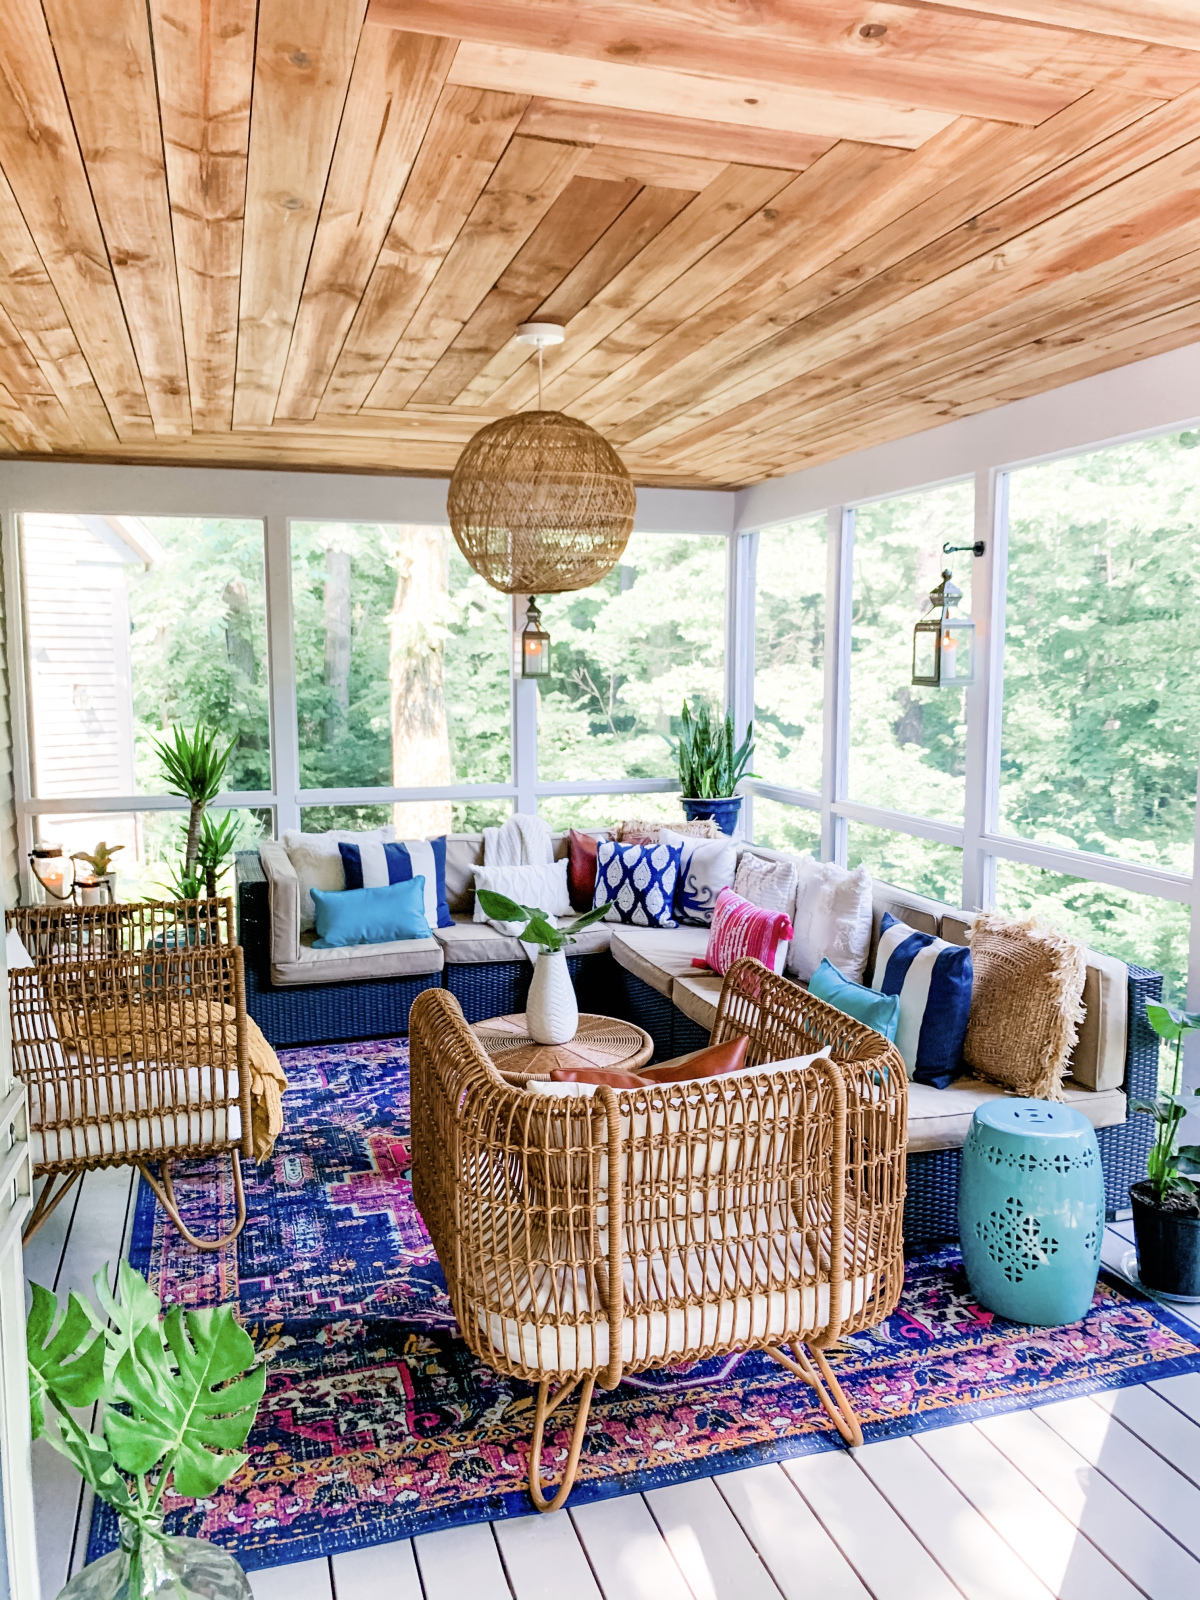 Funky Bohemian Chic Rattan Patio Decor